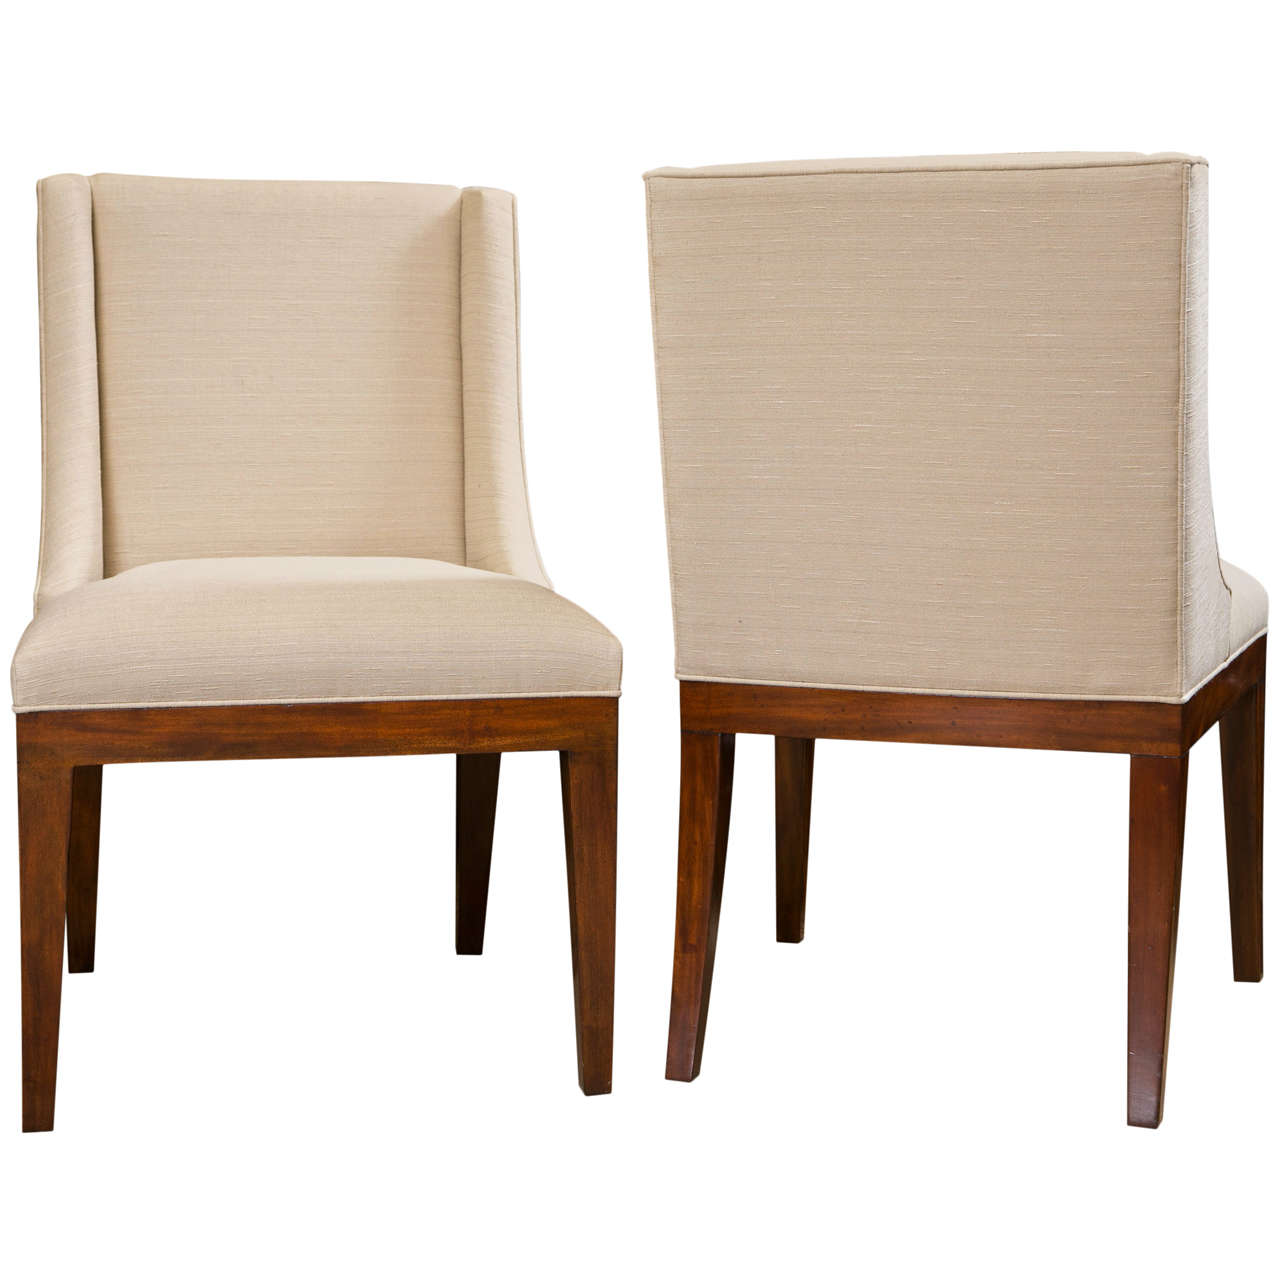 Set of 6 classic modern upholstered dining chairs at 1stdibs for Seating room furniture